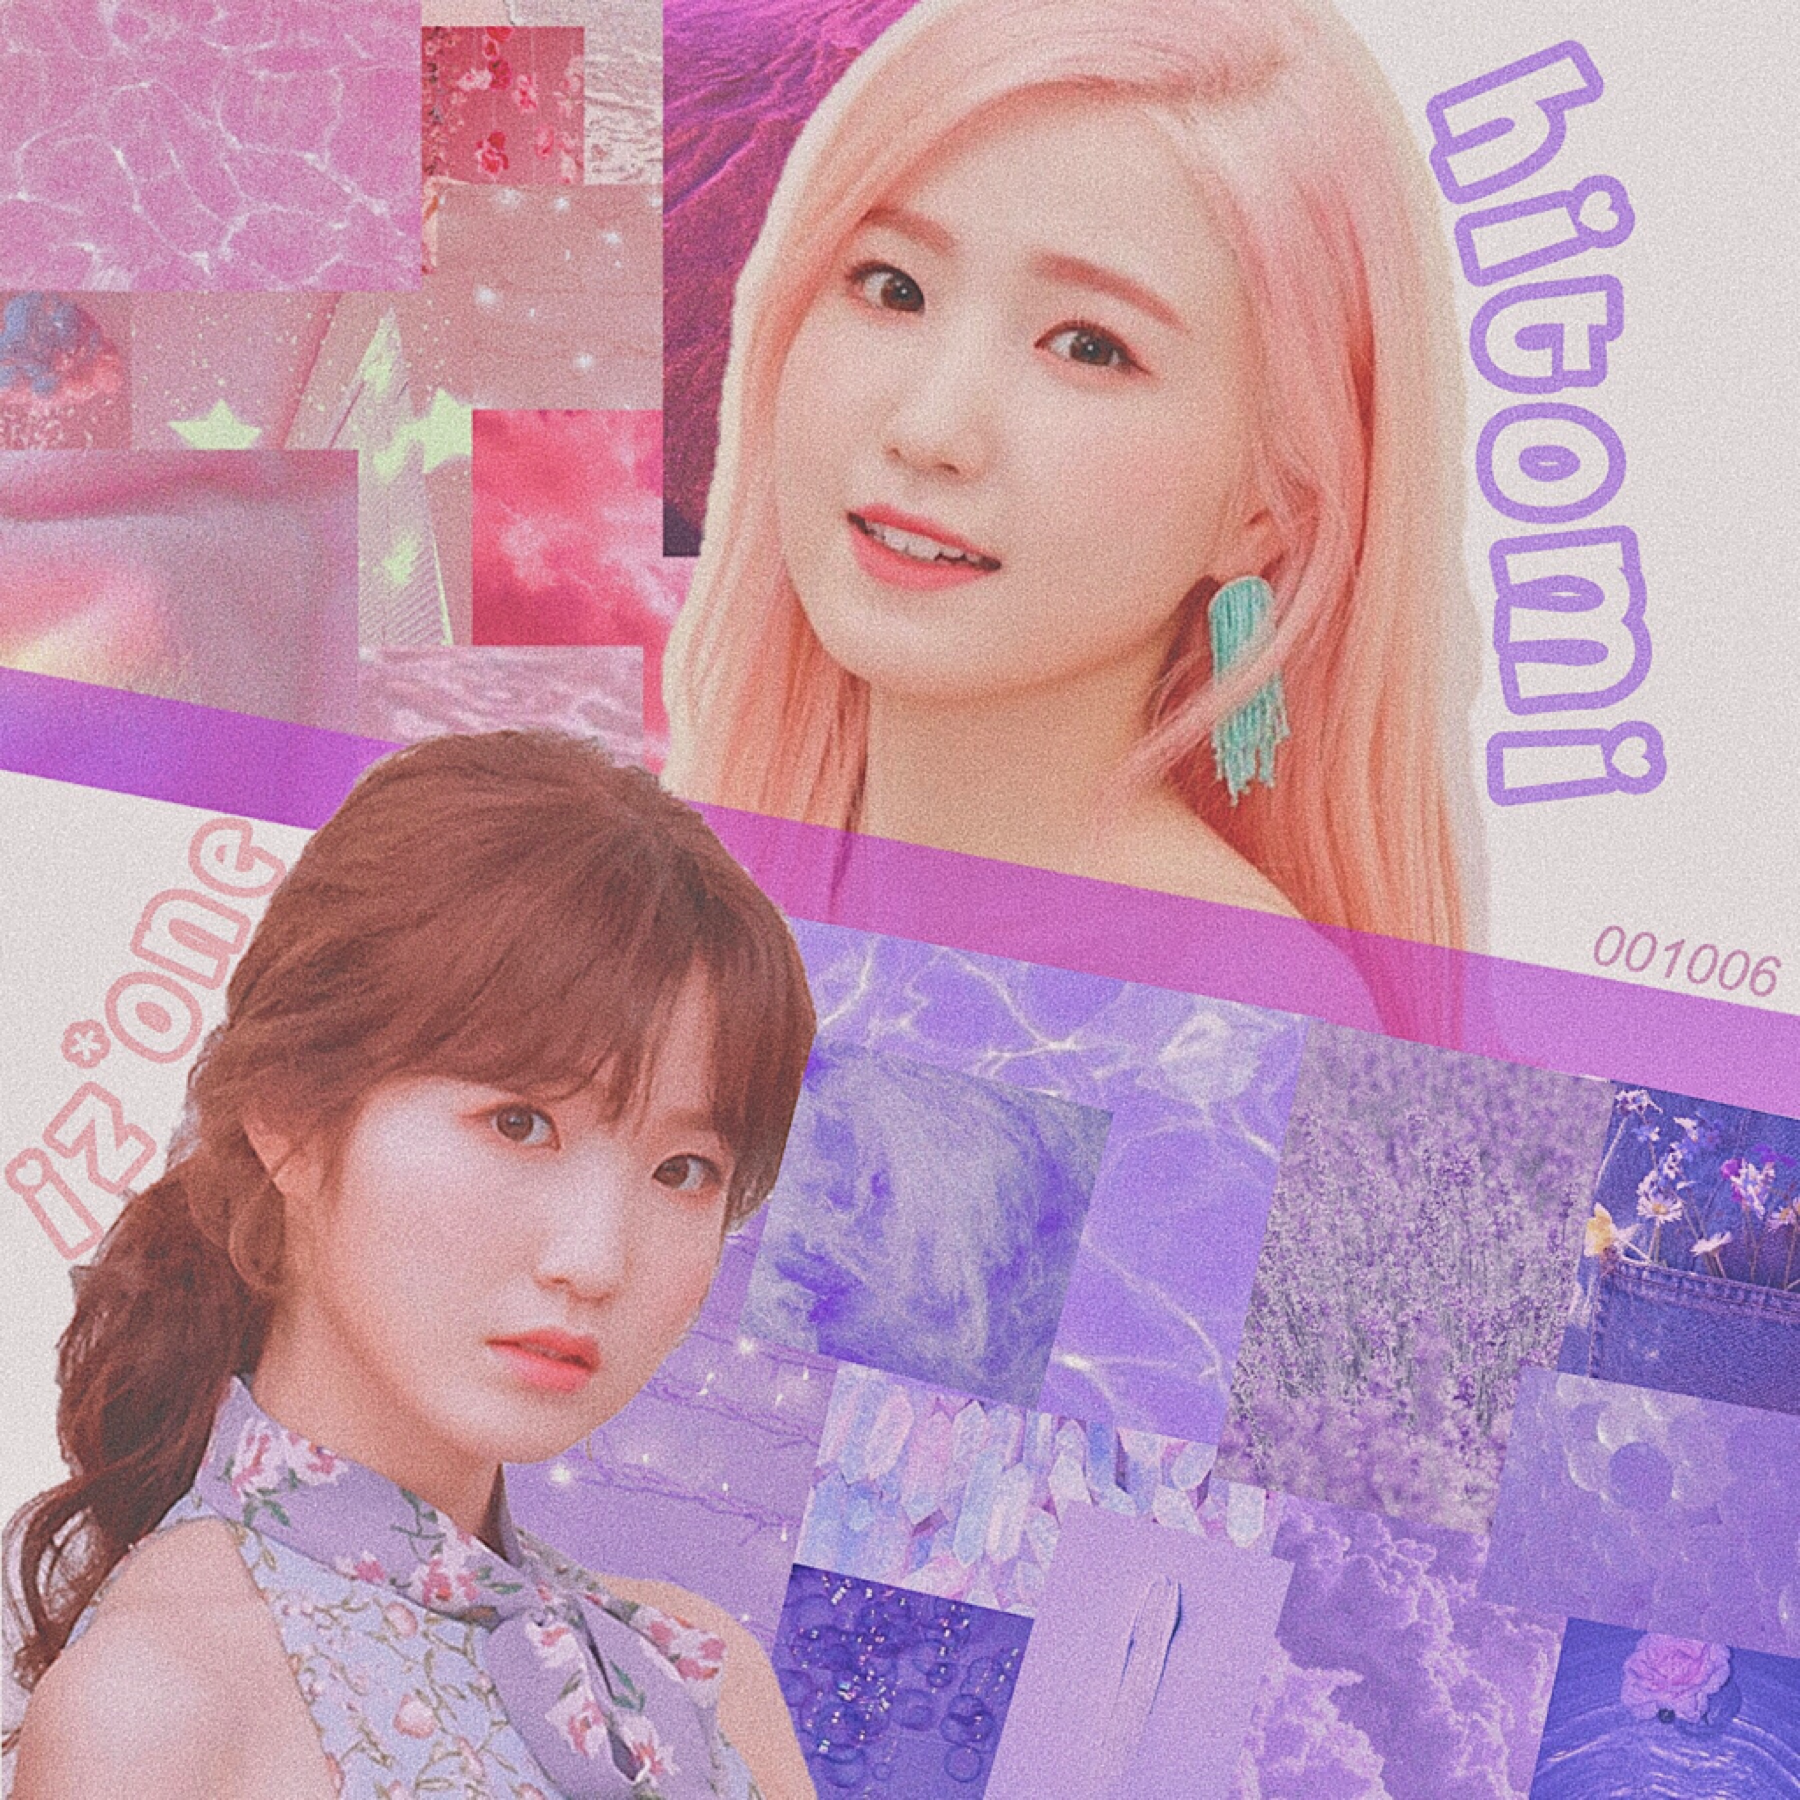 🪁 • hitomi // iz*one • > edit request for @interludewings < ahh i hope you like, sorry for going overboard on the pictures 😭😭  but serious question: what color do you think math is?🤔😂